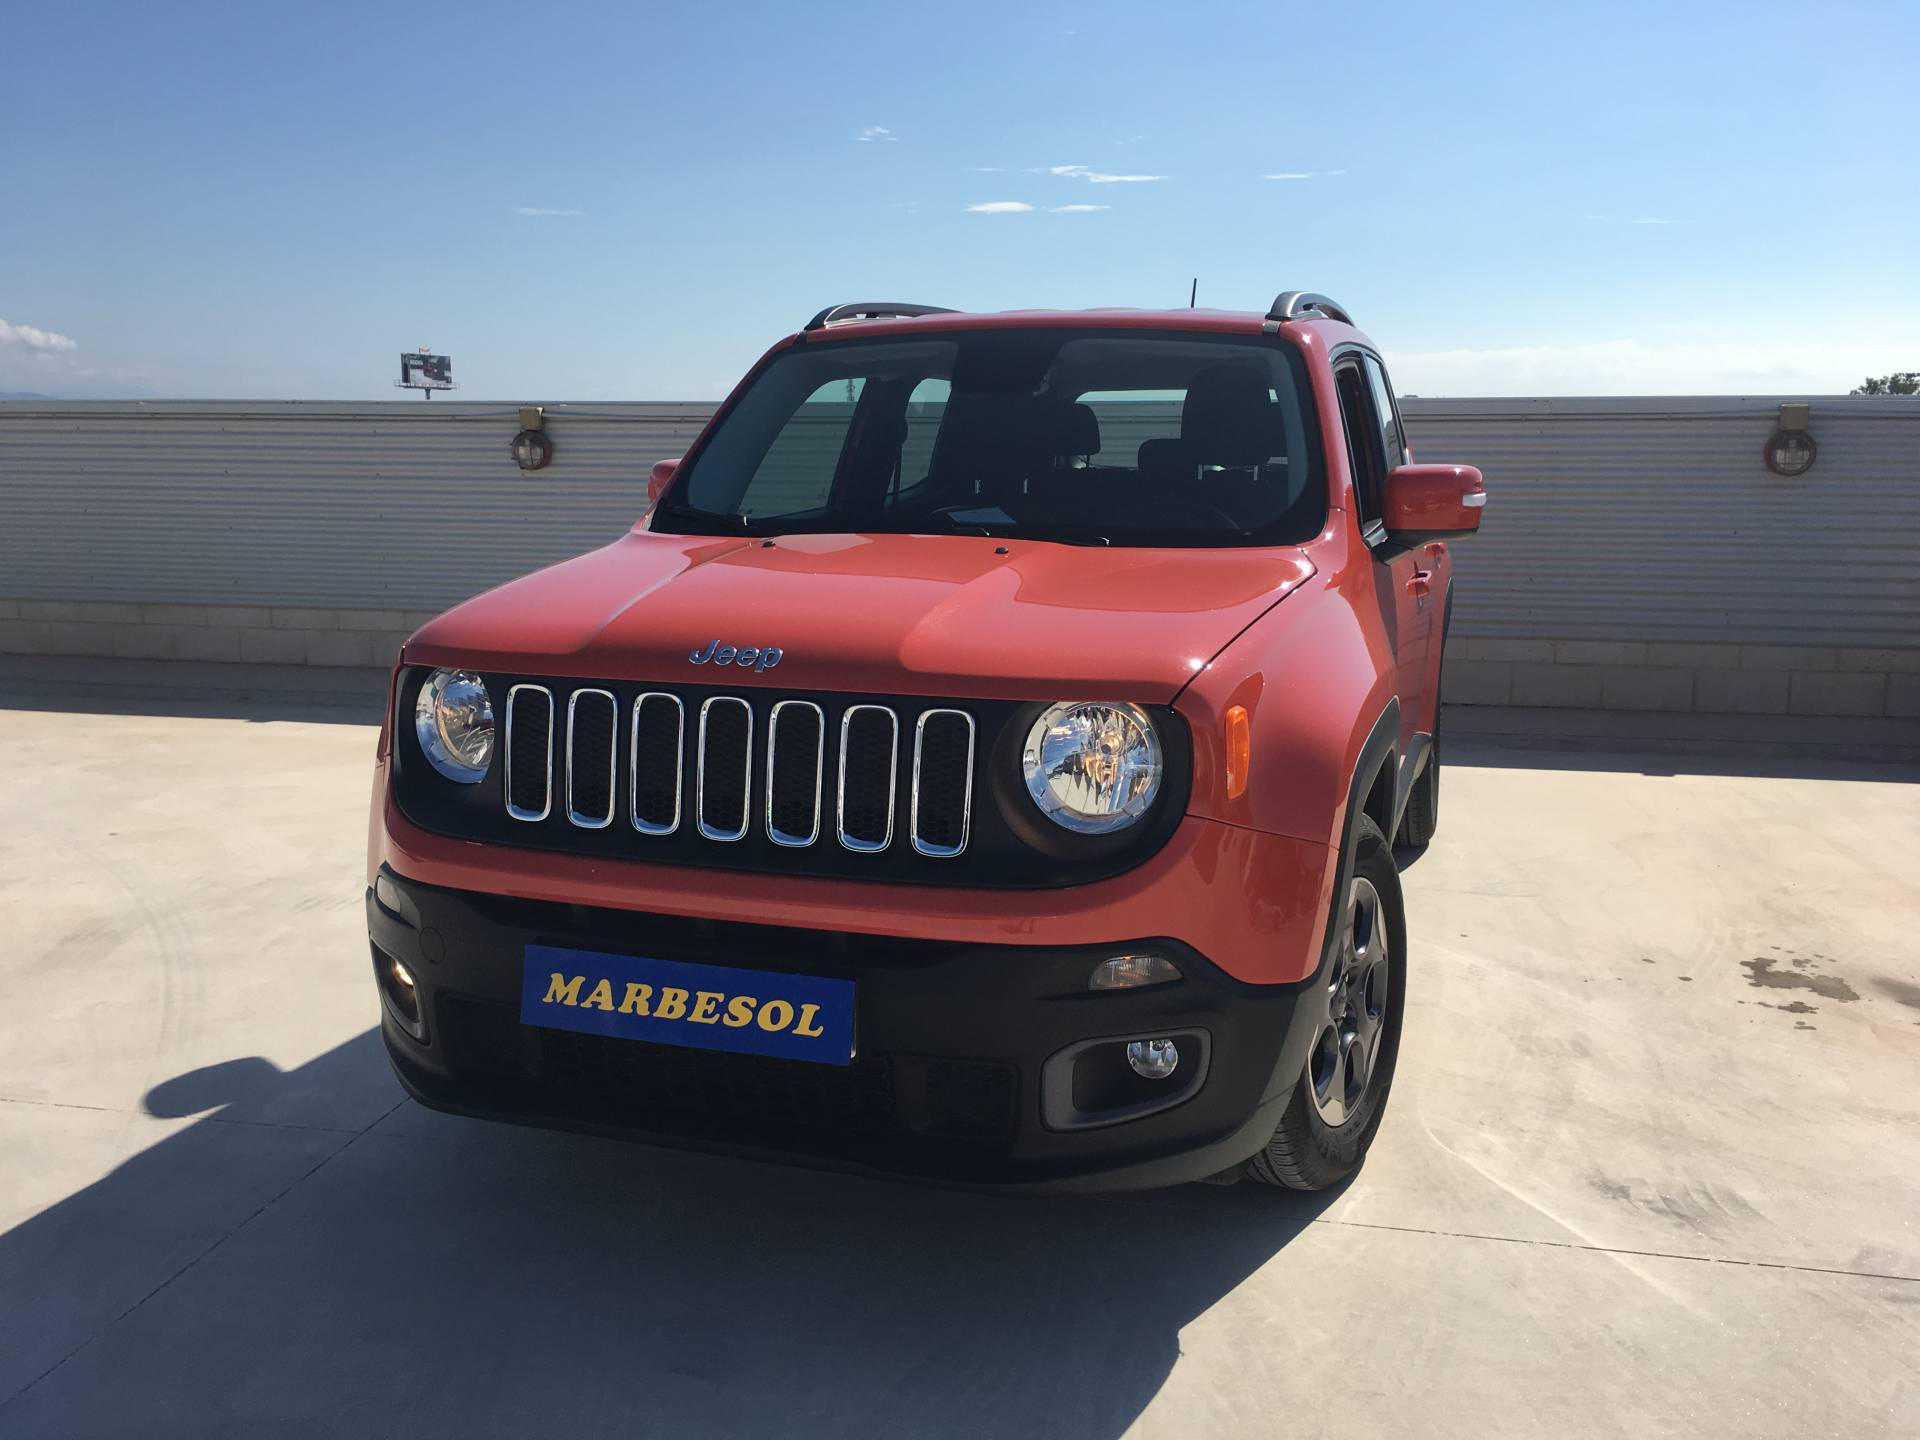 jeep renegade 1 6 mjet longitude 120 cv sales used cars malaga used car dealers cars for sales okcoches